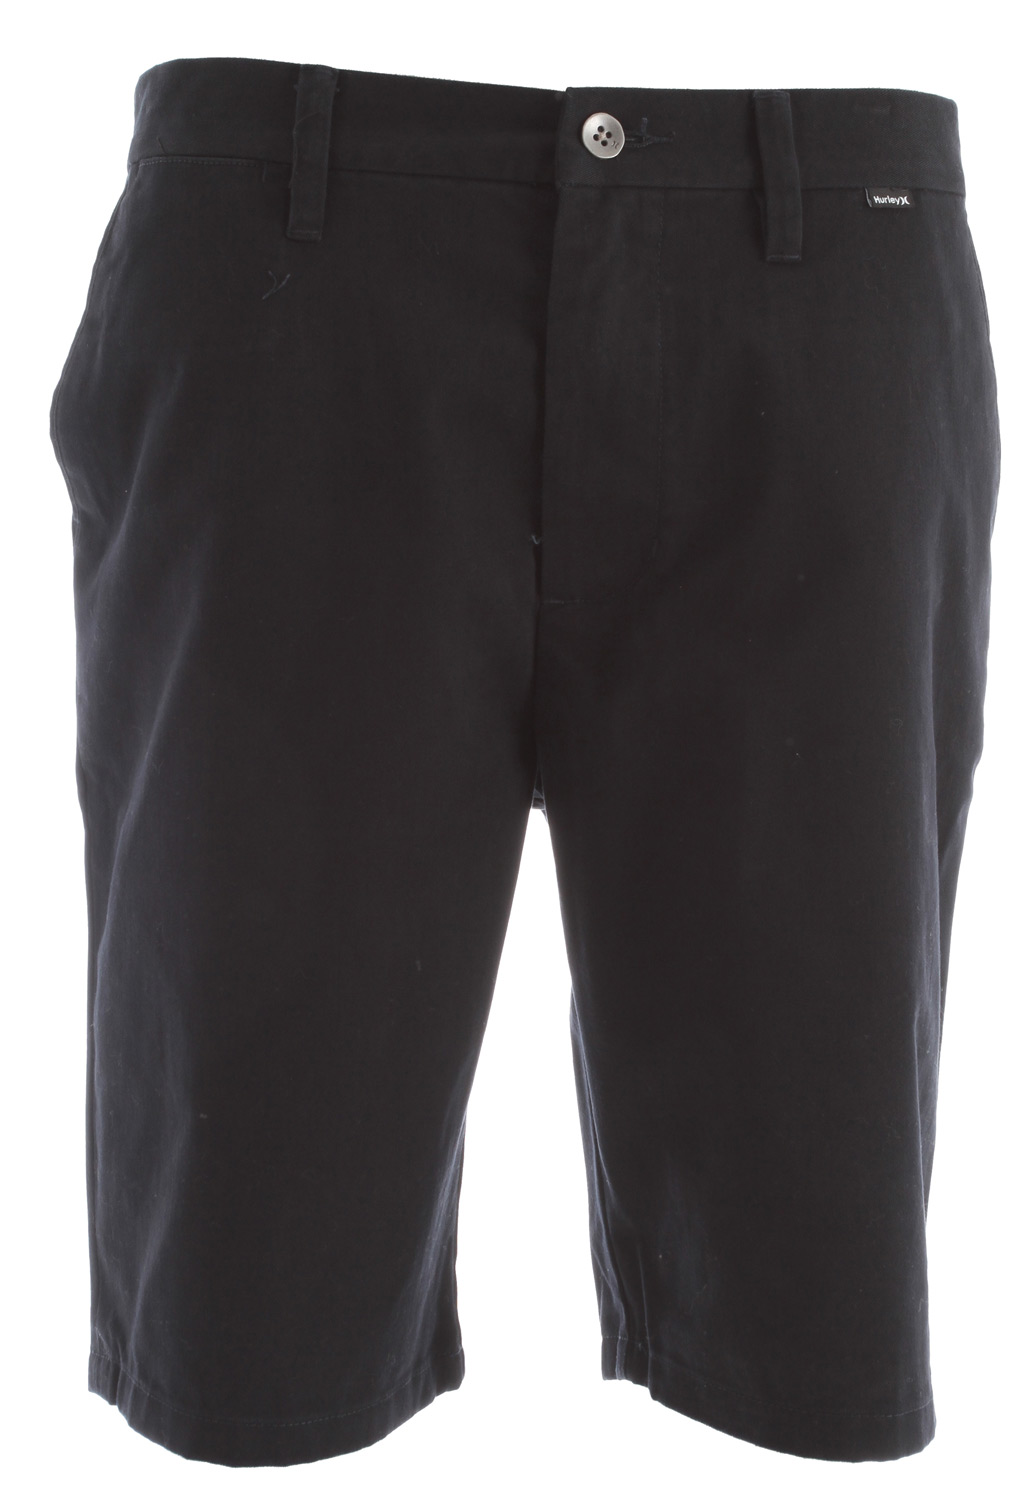 Surf Key Features of the Hurley One & Only 2.0 Shorts: Trouser Fit 60% Cotton40% Polyester Twill Welt back pockets Coin pocket Metal button closure at waistband and back pockets Interior butterflied seams Woven label branding, high density heat transfer branding and self applique icon at waistband. - $31.95